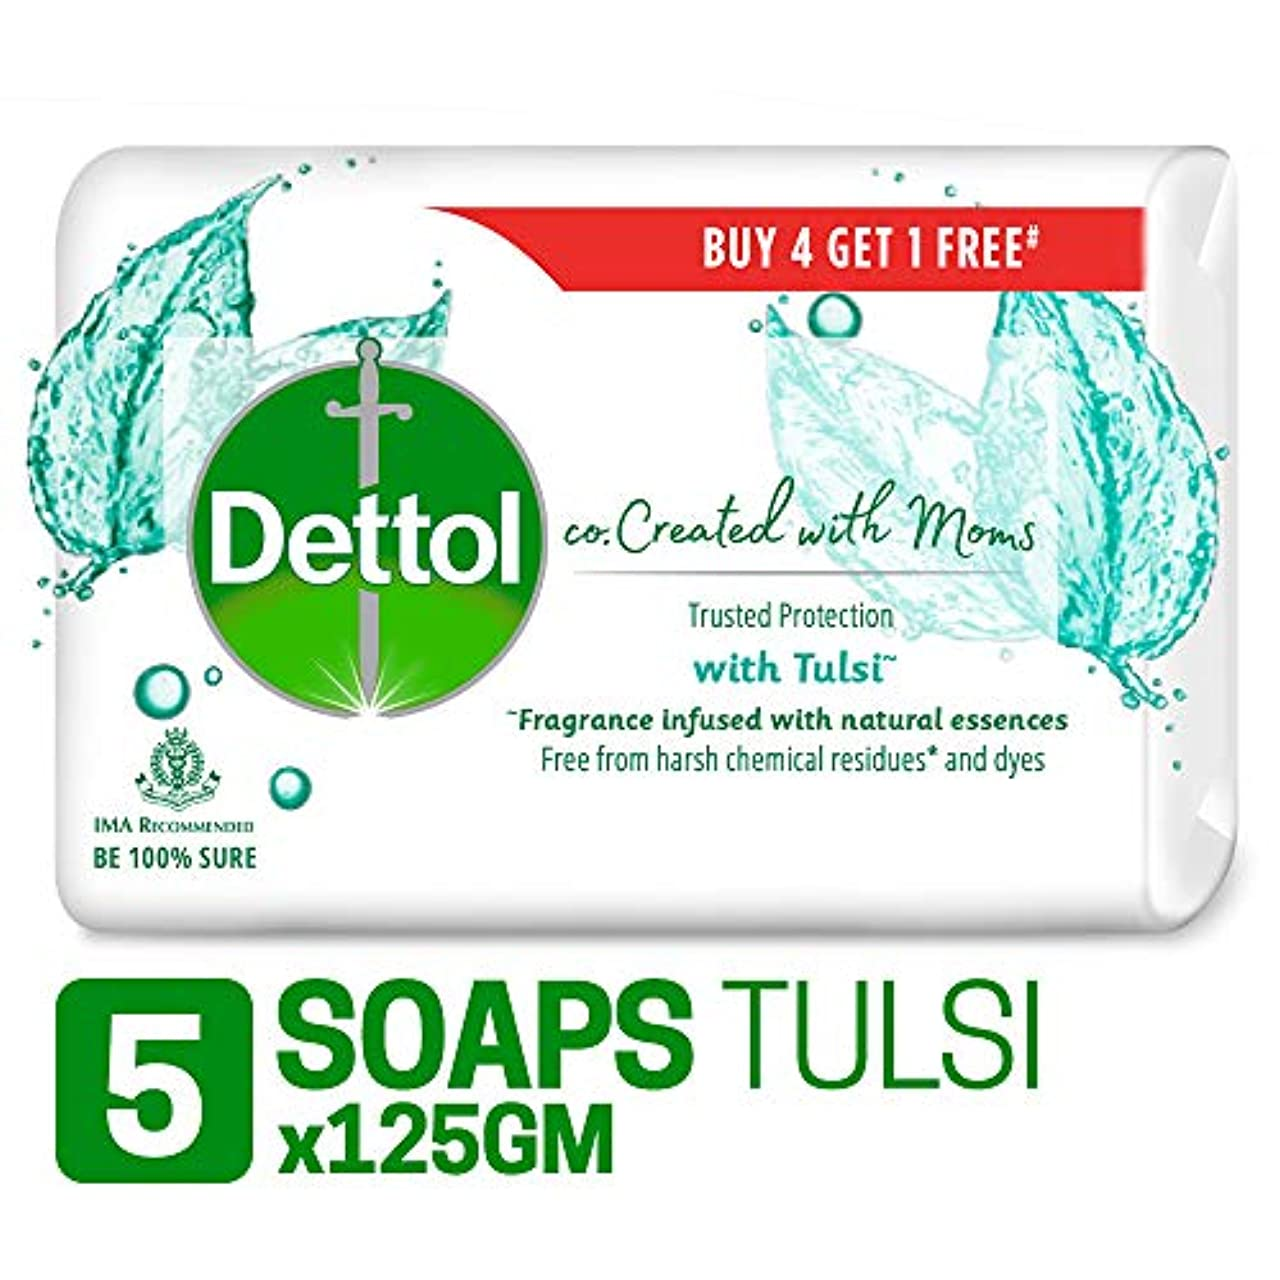 最大限ロック解除残りDettol Co-created with moms Tulsi Bathing Soap, 125gm (Buy 4 Get 1 Free)